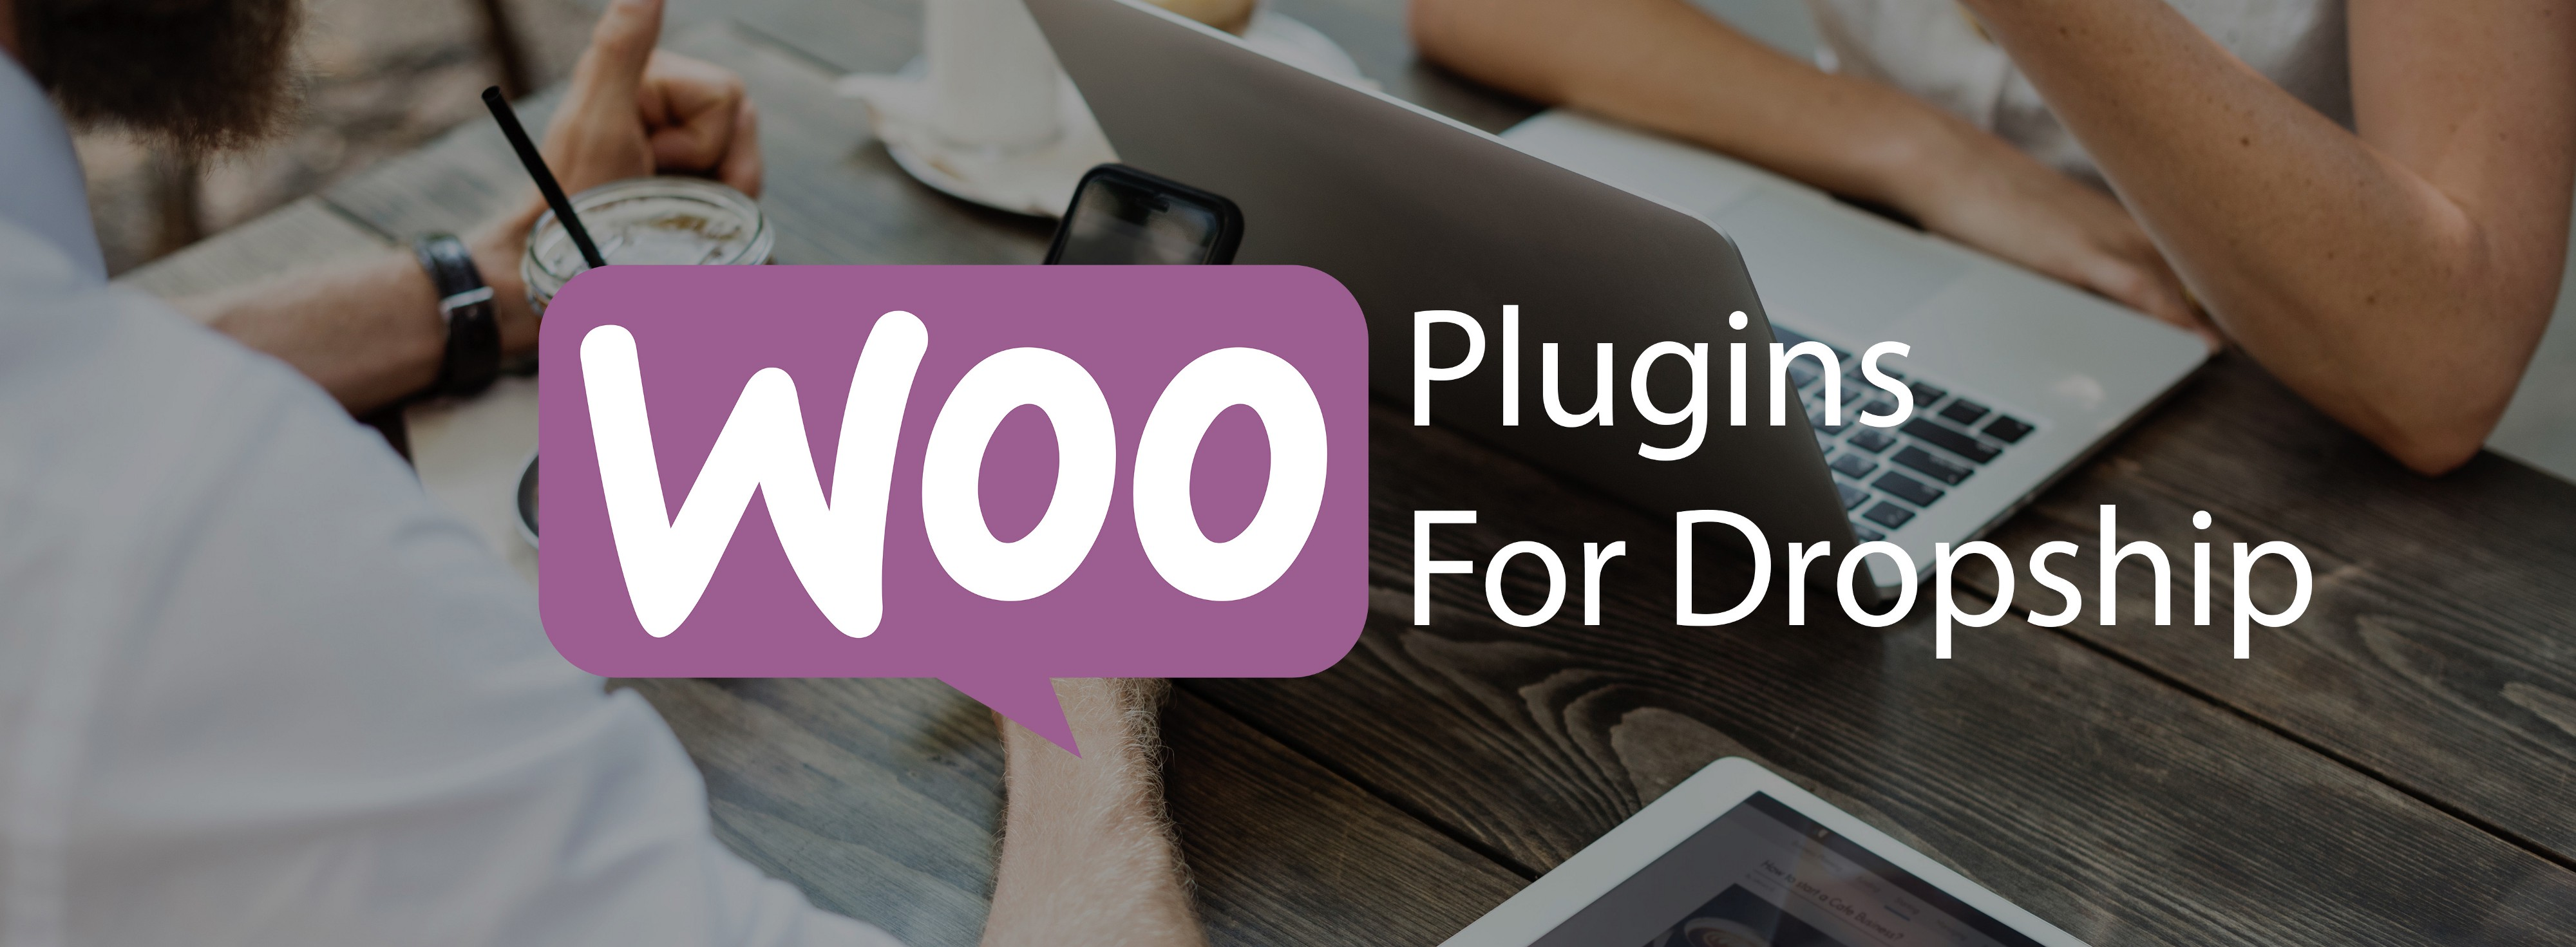 10 Best Marketing Plugins to Supercharge WooCommerce drop